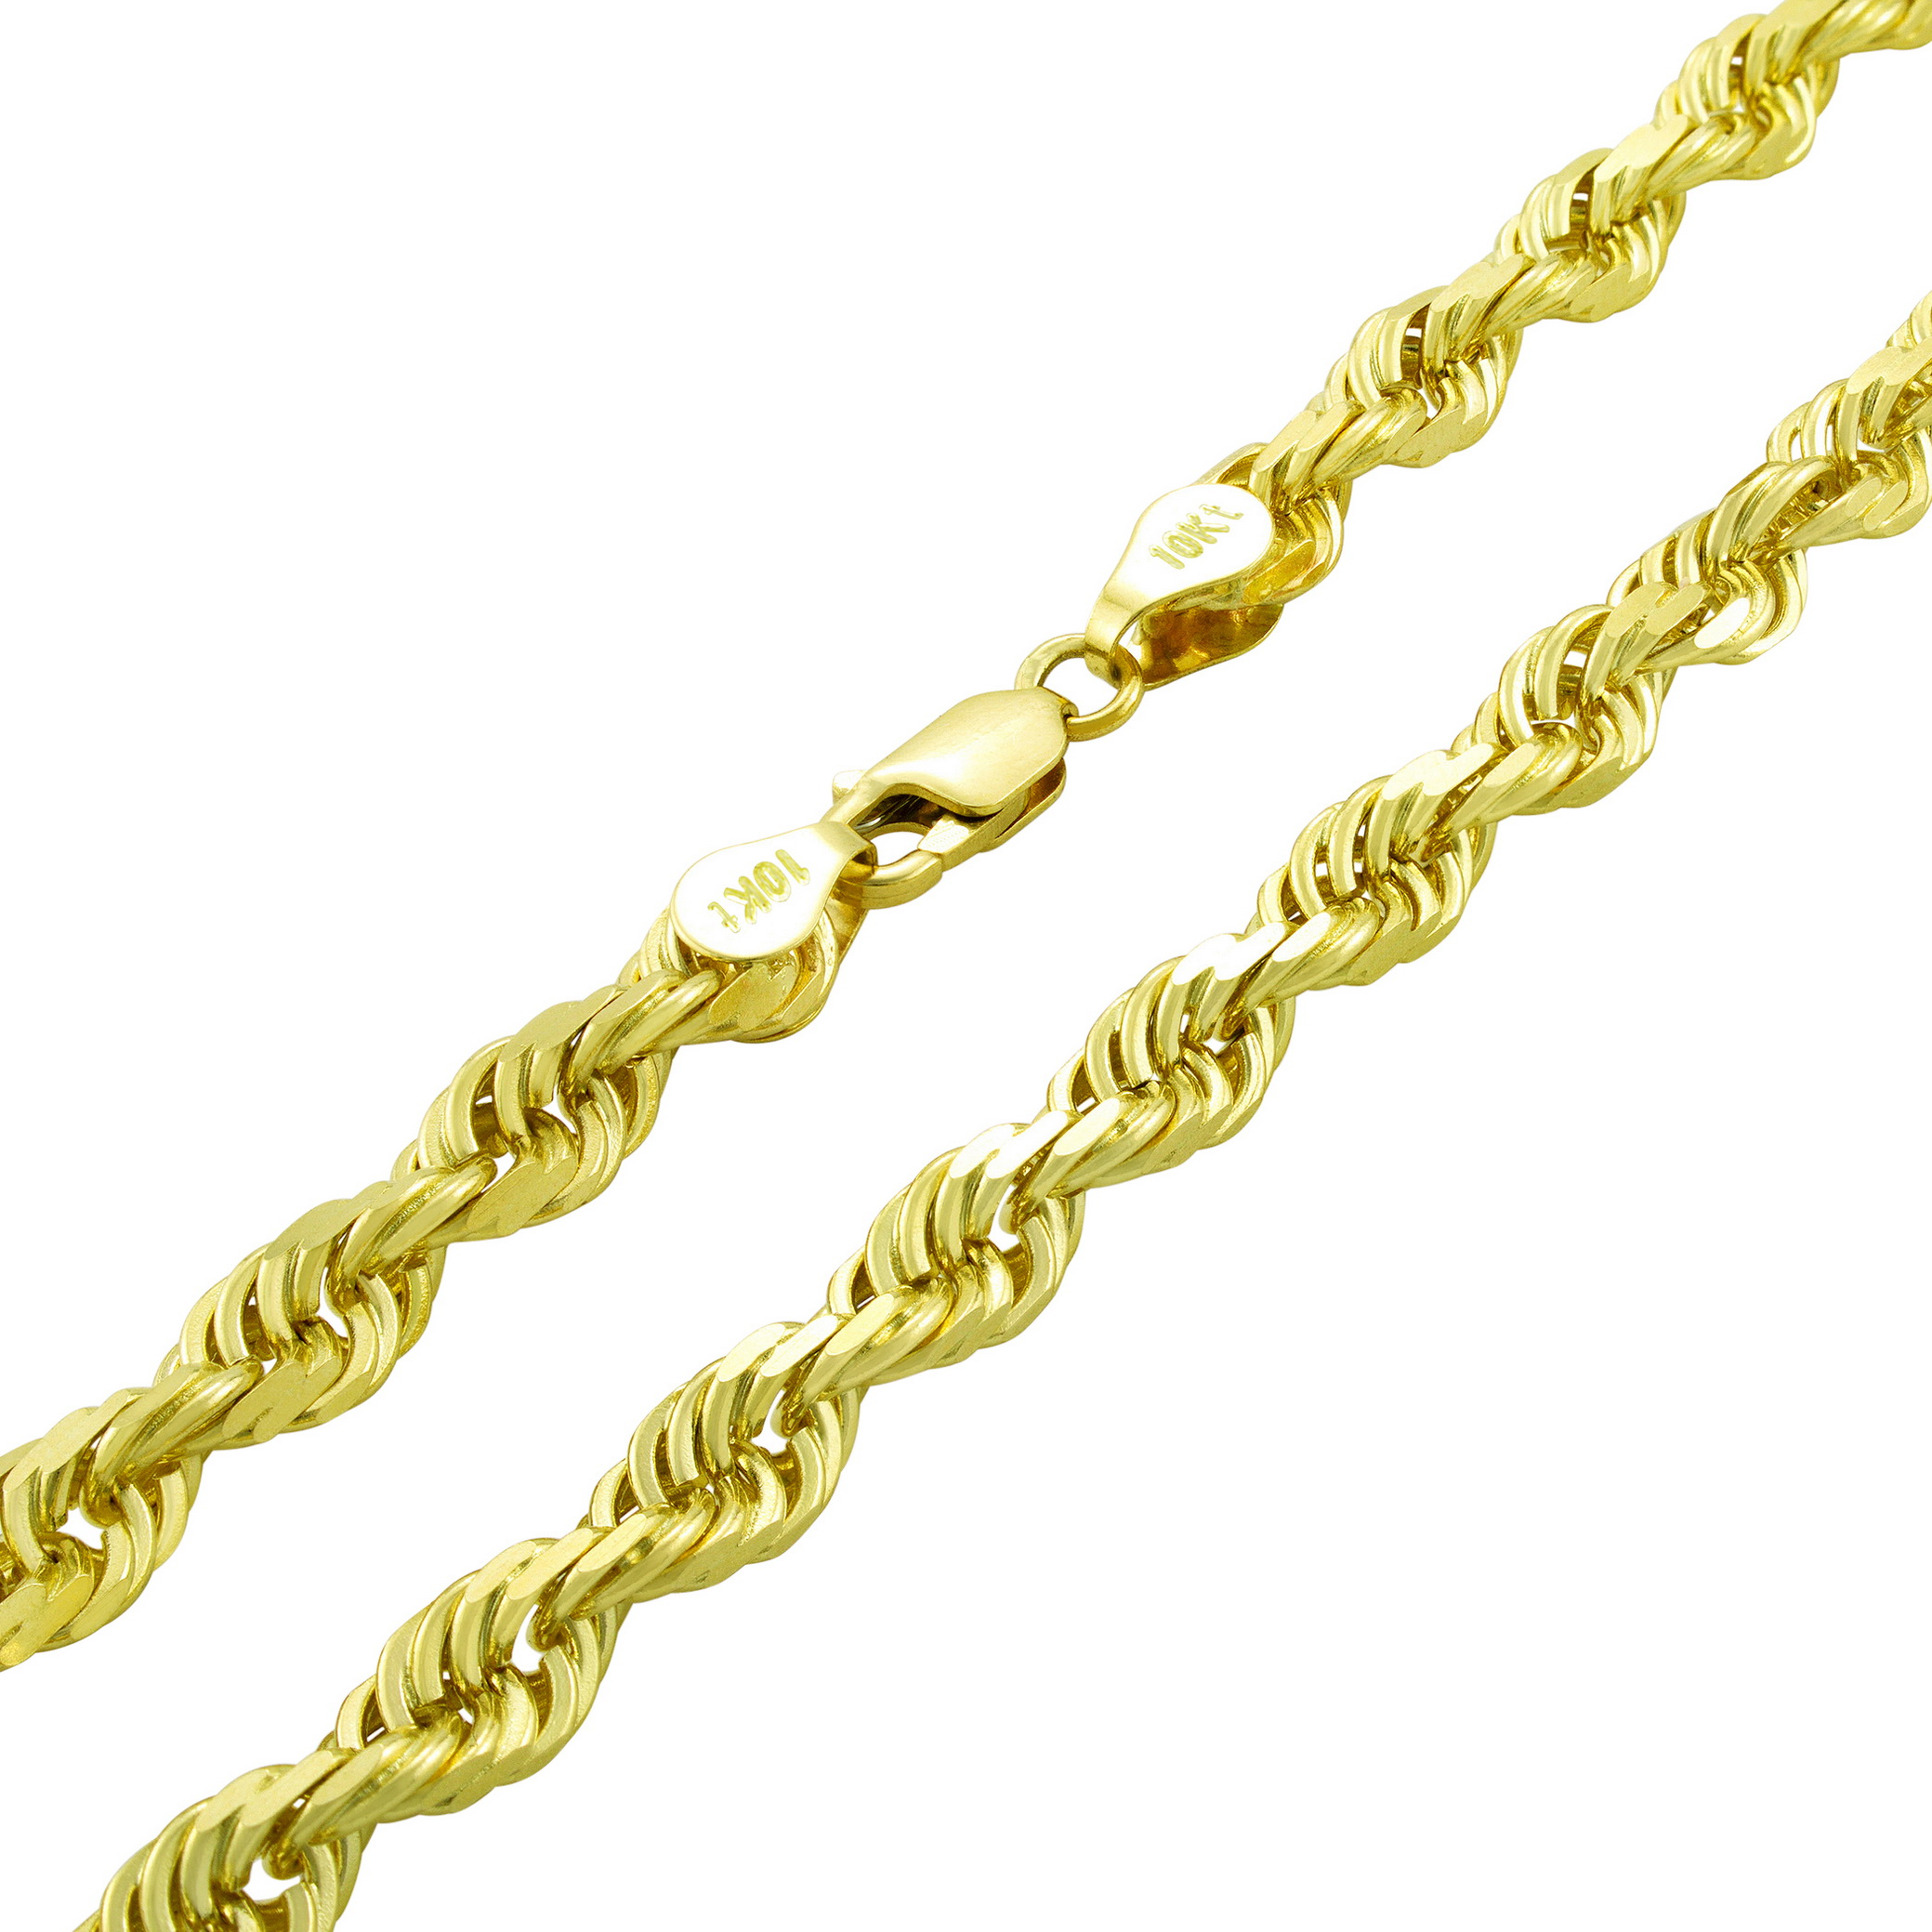 Solid-10k-Yellow-Gold-Mens-Thick-6mm-Diamond-Cut-Rope-Chain-Necklace-20-034-30-034 thumbnail 17